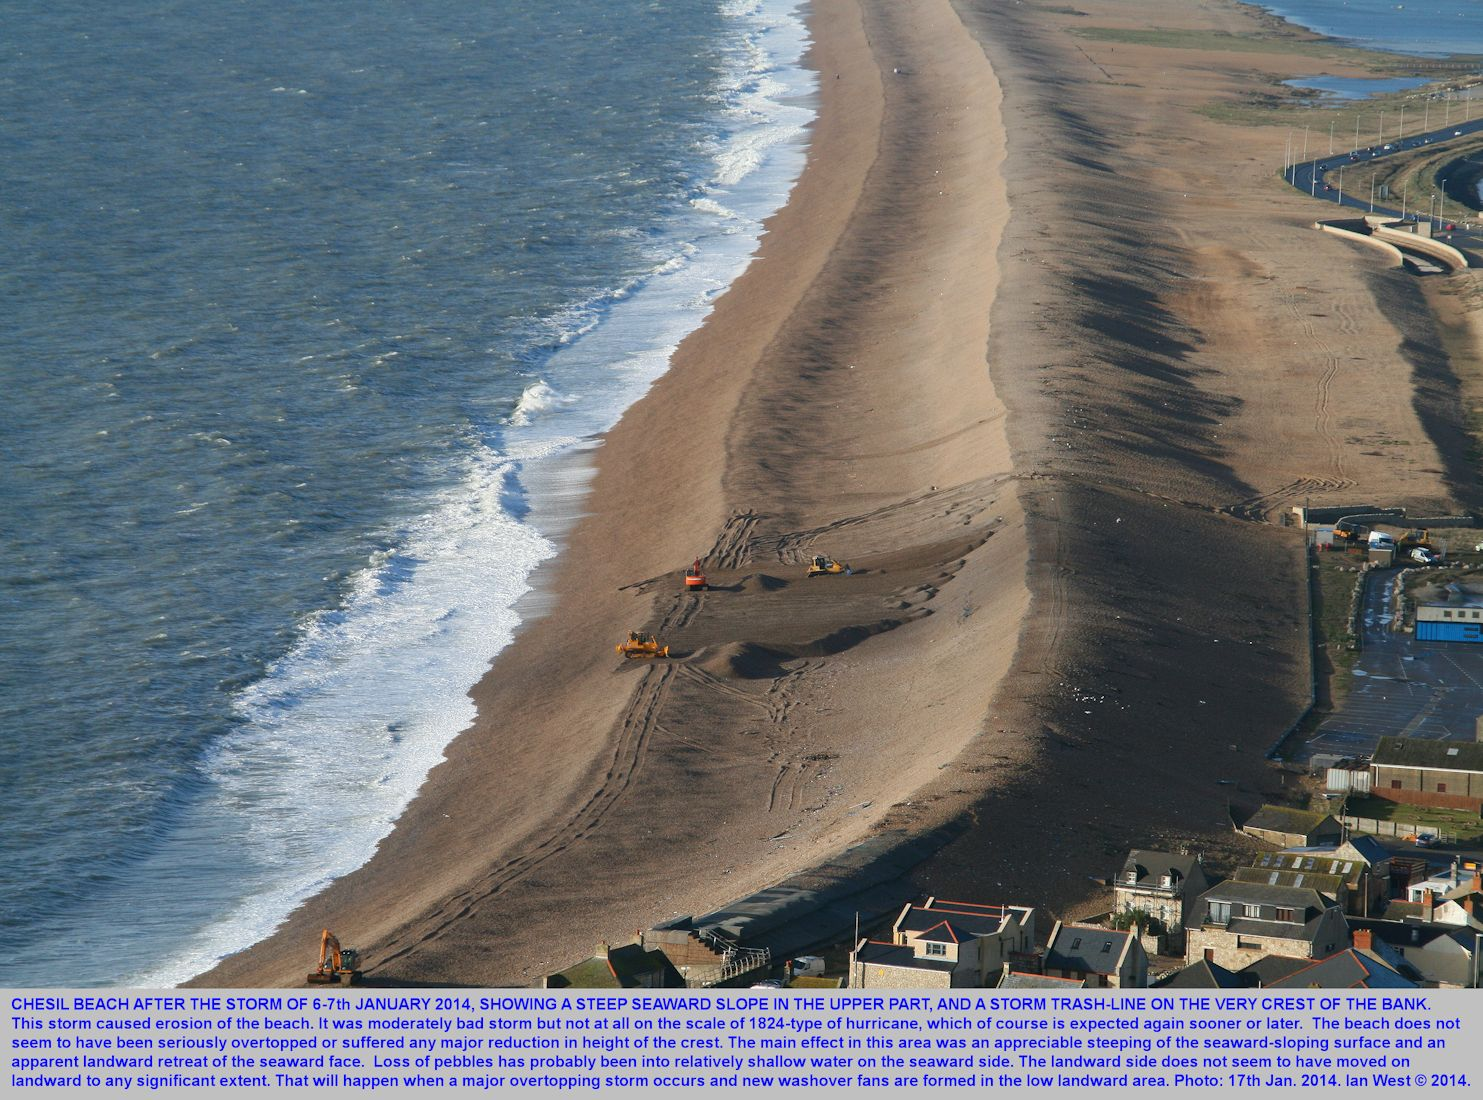 An overview of part of the Chesil Beach at Chiswell after the storm of 6-7th January 2014